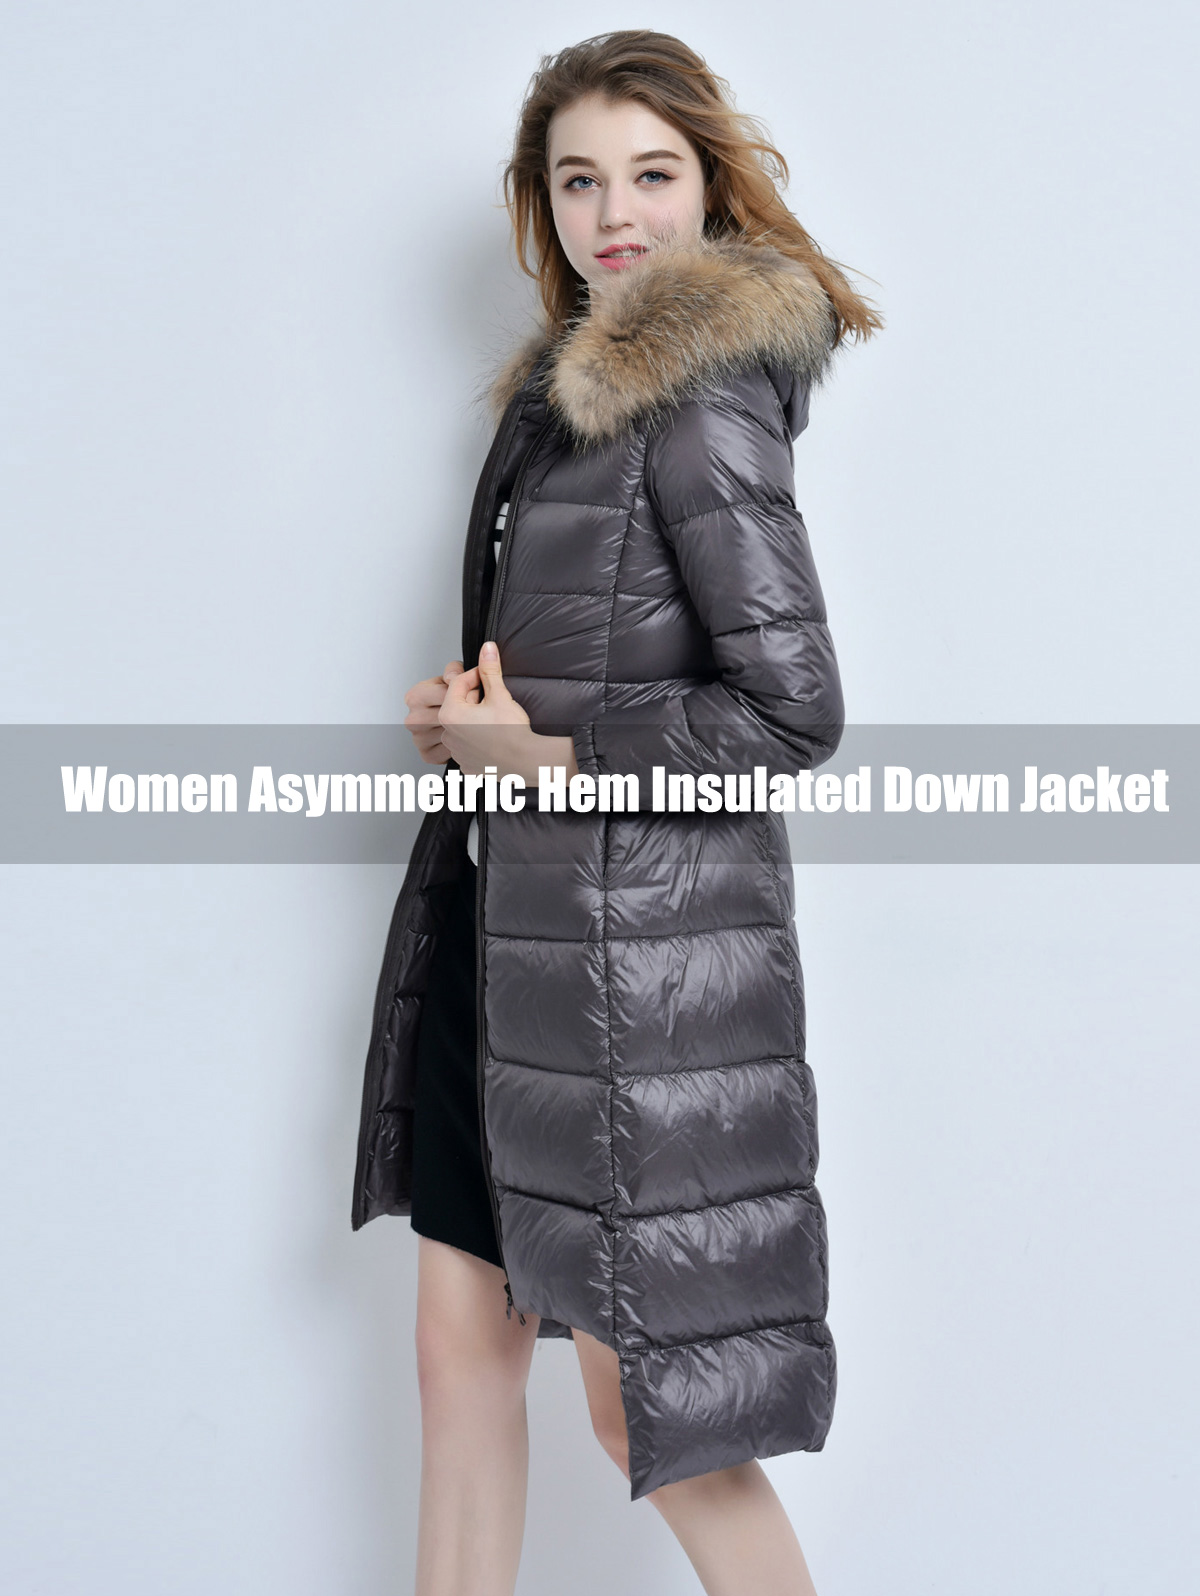 Women Asymmetric Hem Insulated Down Jacket